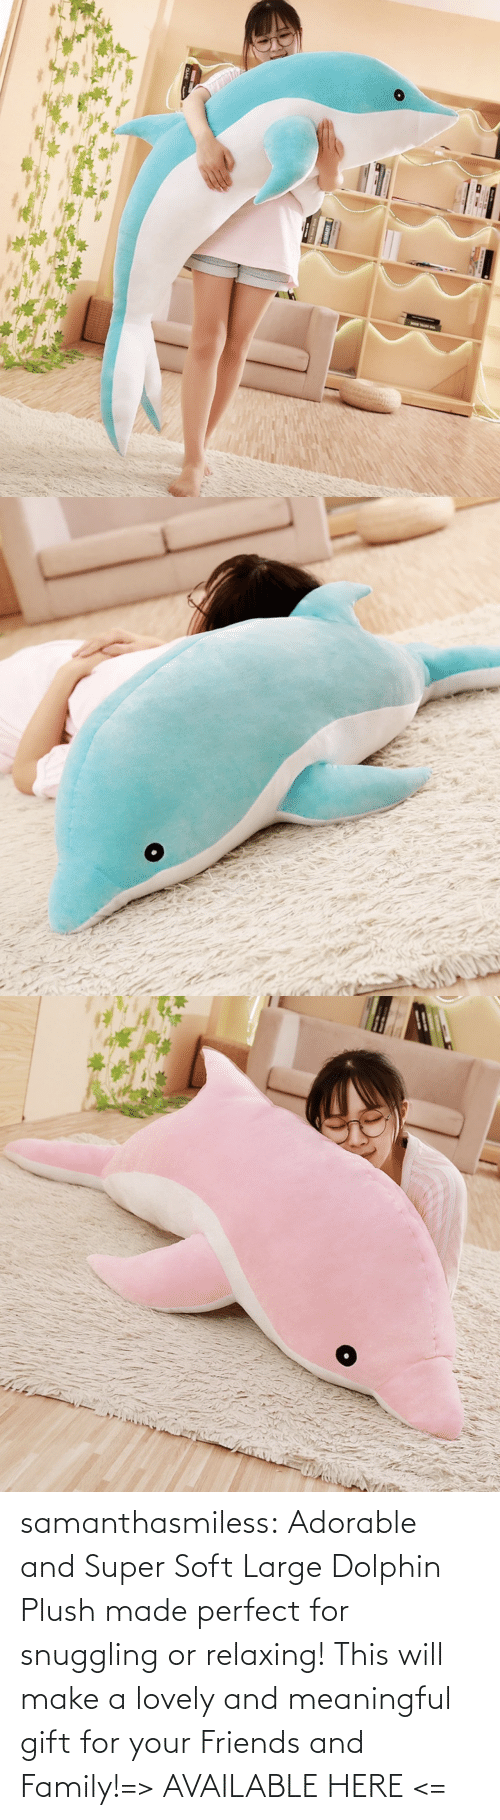 Family, Friends, and Target: samanthasmiless:  Adorable and Super Soft Large Dolphin Plush made perfect for snuggling or relaxing! This will make a lovely and meaningful gift for your Friends and Family!=> AVAILABLE HERE <=